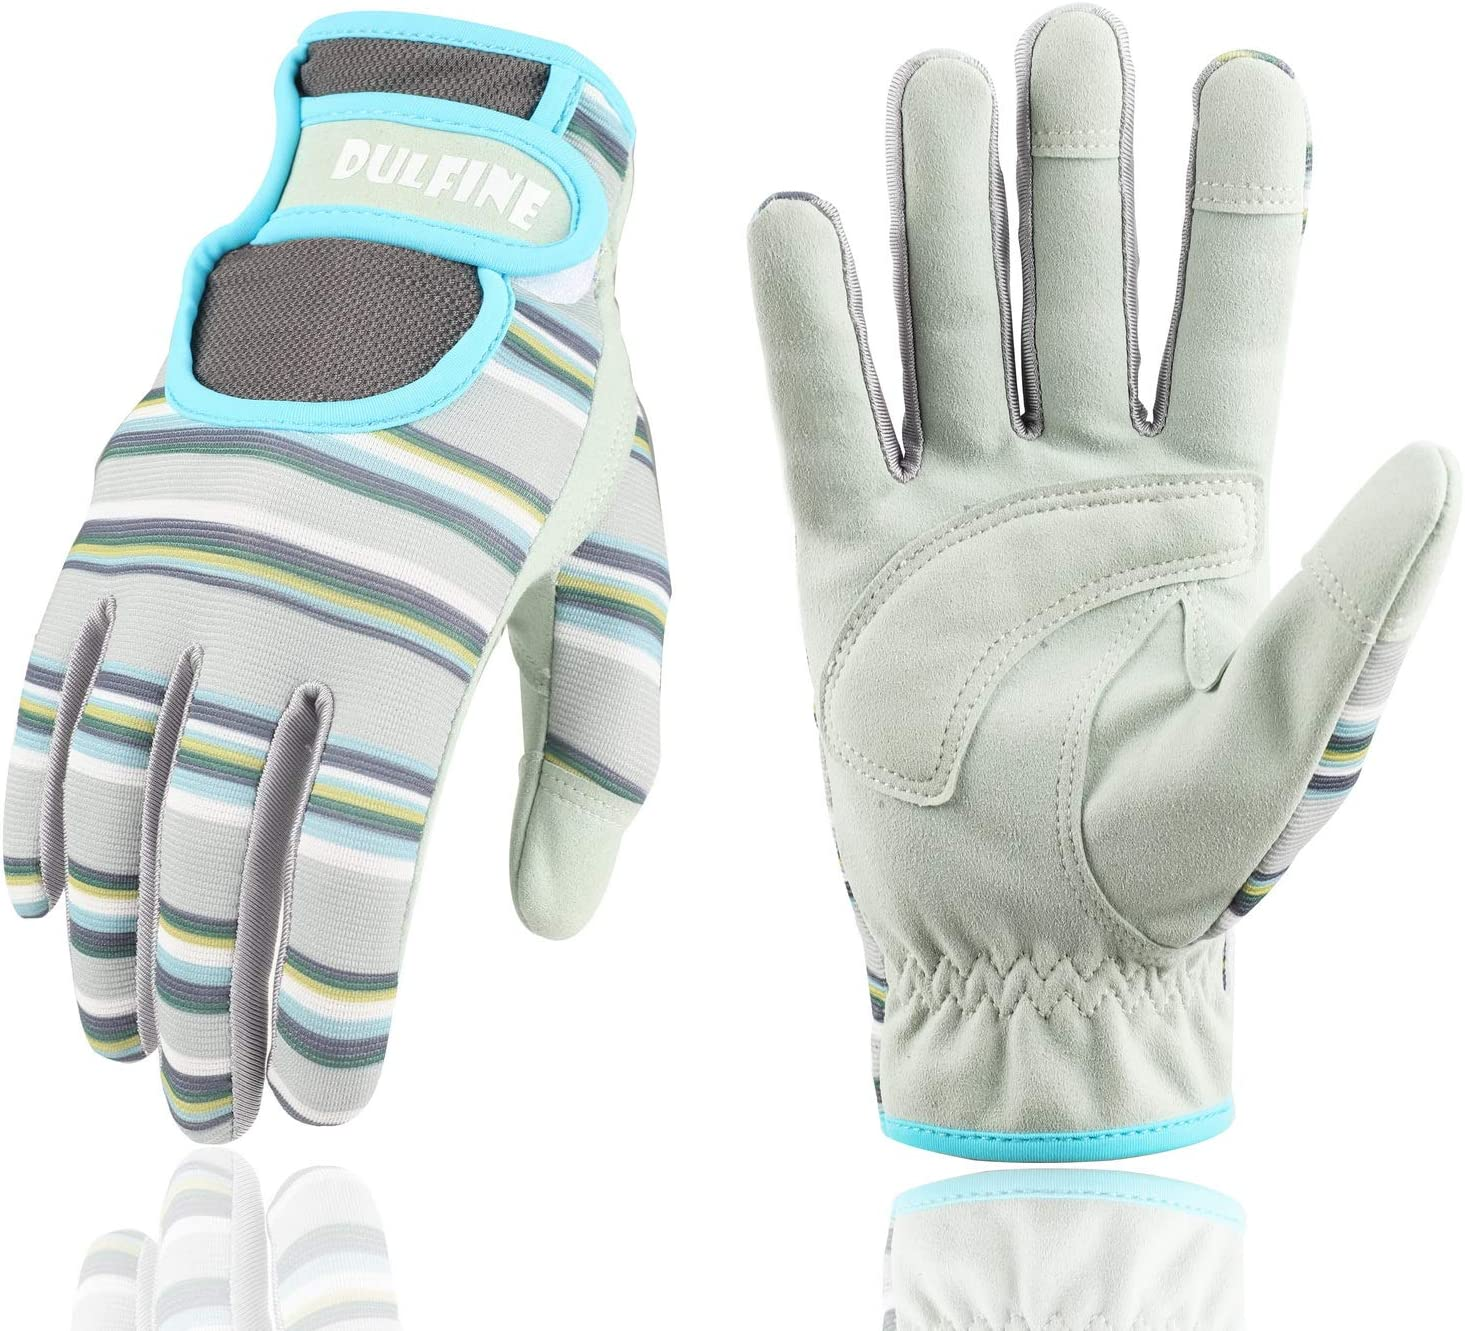 High Performance Women Garden Gloves Max 88% OFF Durable Synthetic Leather a Ranking TOP3